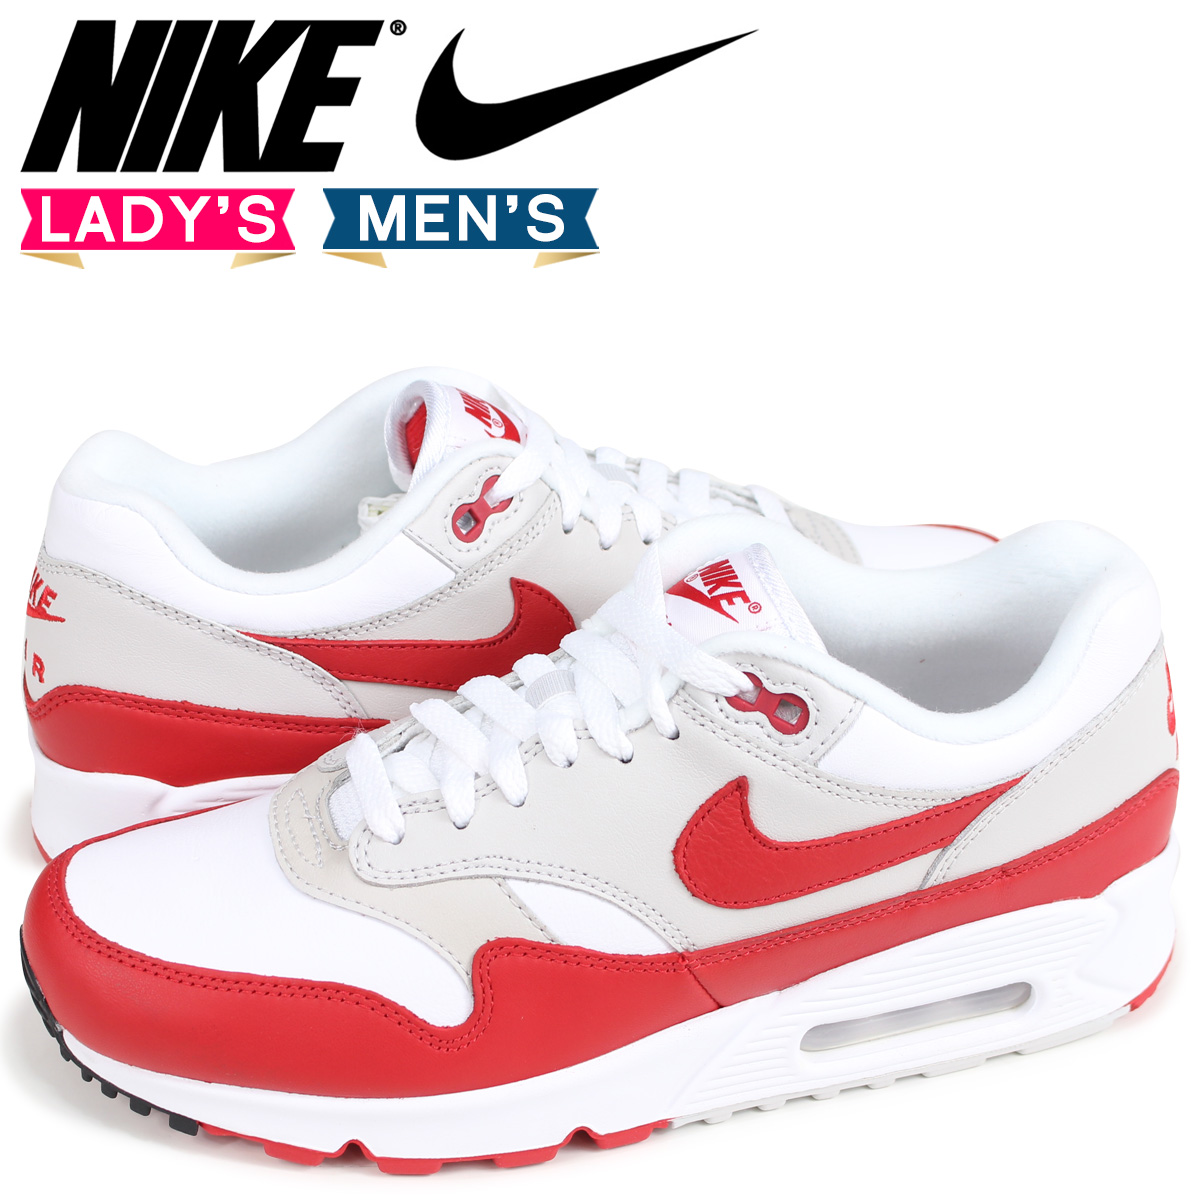 online store 40b2d cd12f NIKE WMNS AIR MAX 90 1 Kie Ney AMAX 90 1 sneakers Lady s men white AQ1273- 100